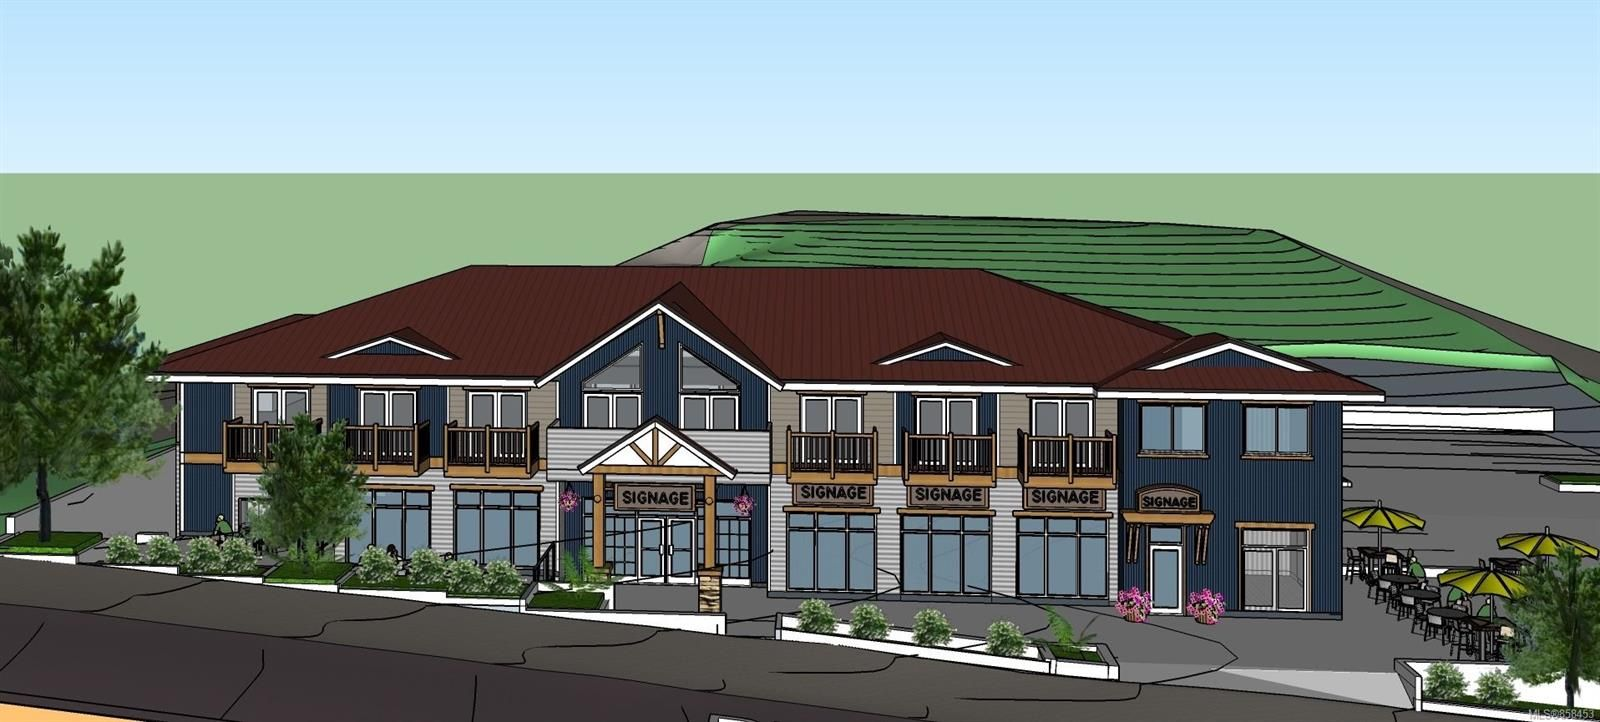 Main Photo: 1920 Peninsula Rd in : PA Ucluelet Mixed Use for sale (Port Alberni)  : MLS®# 858453